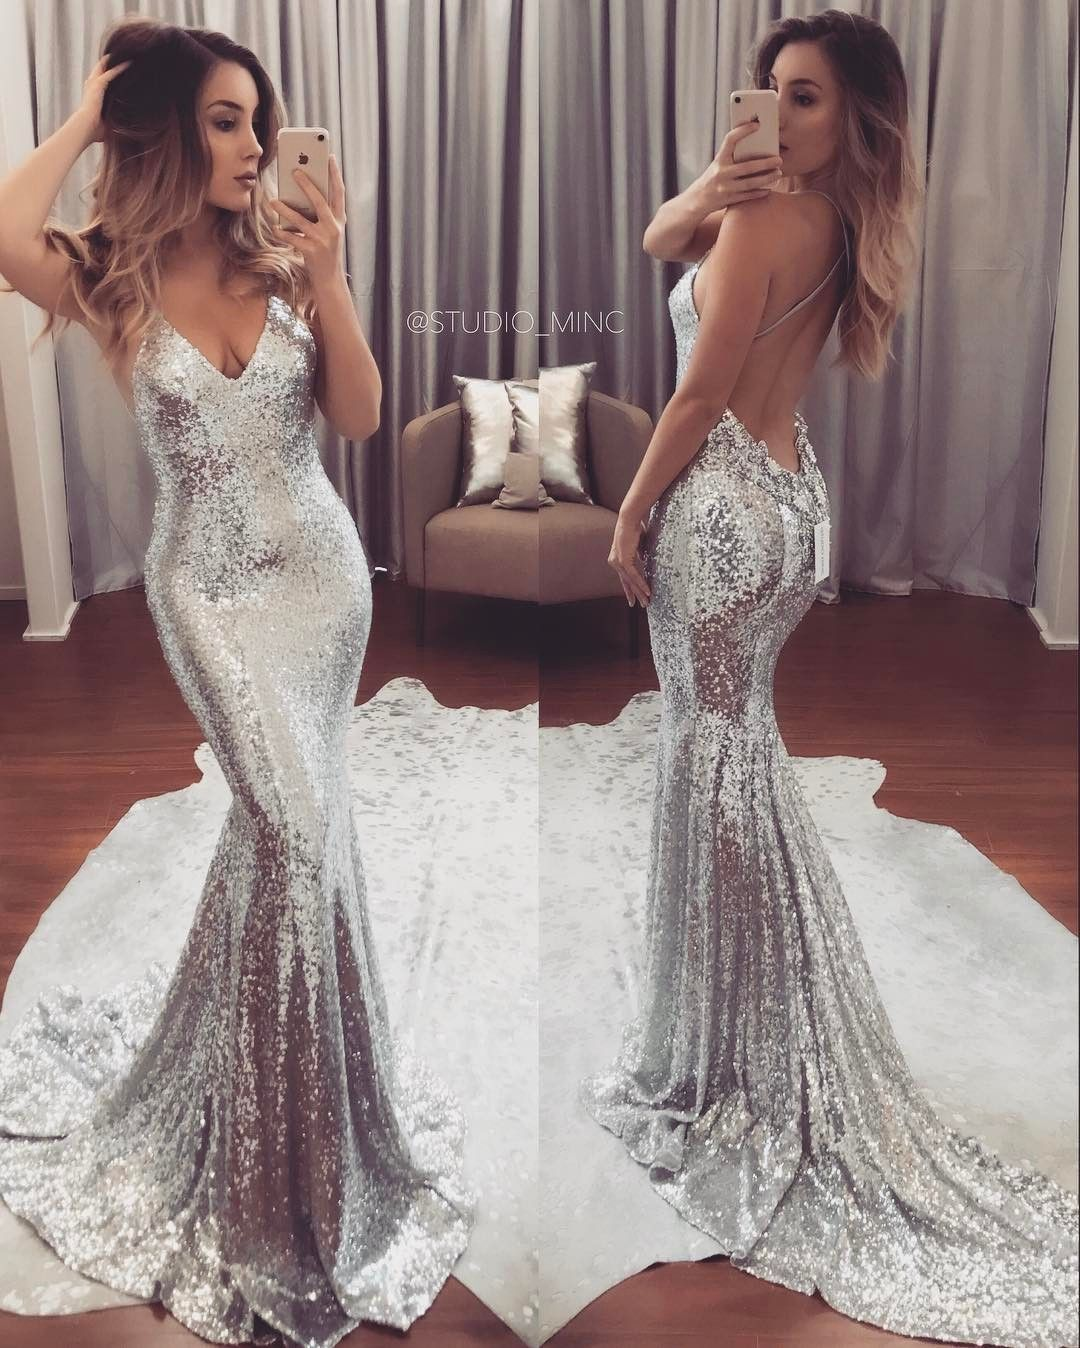 Silver angel backless formal prom dress by studio minc clothes